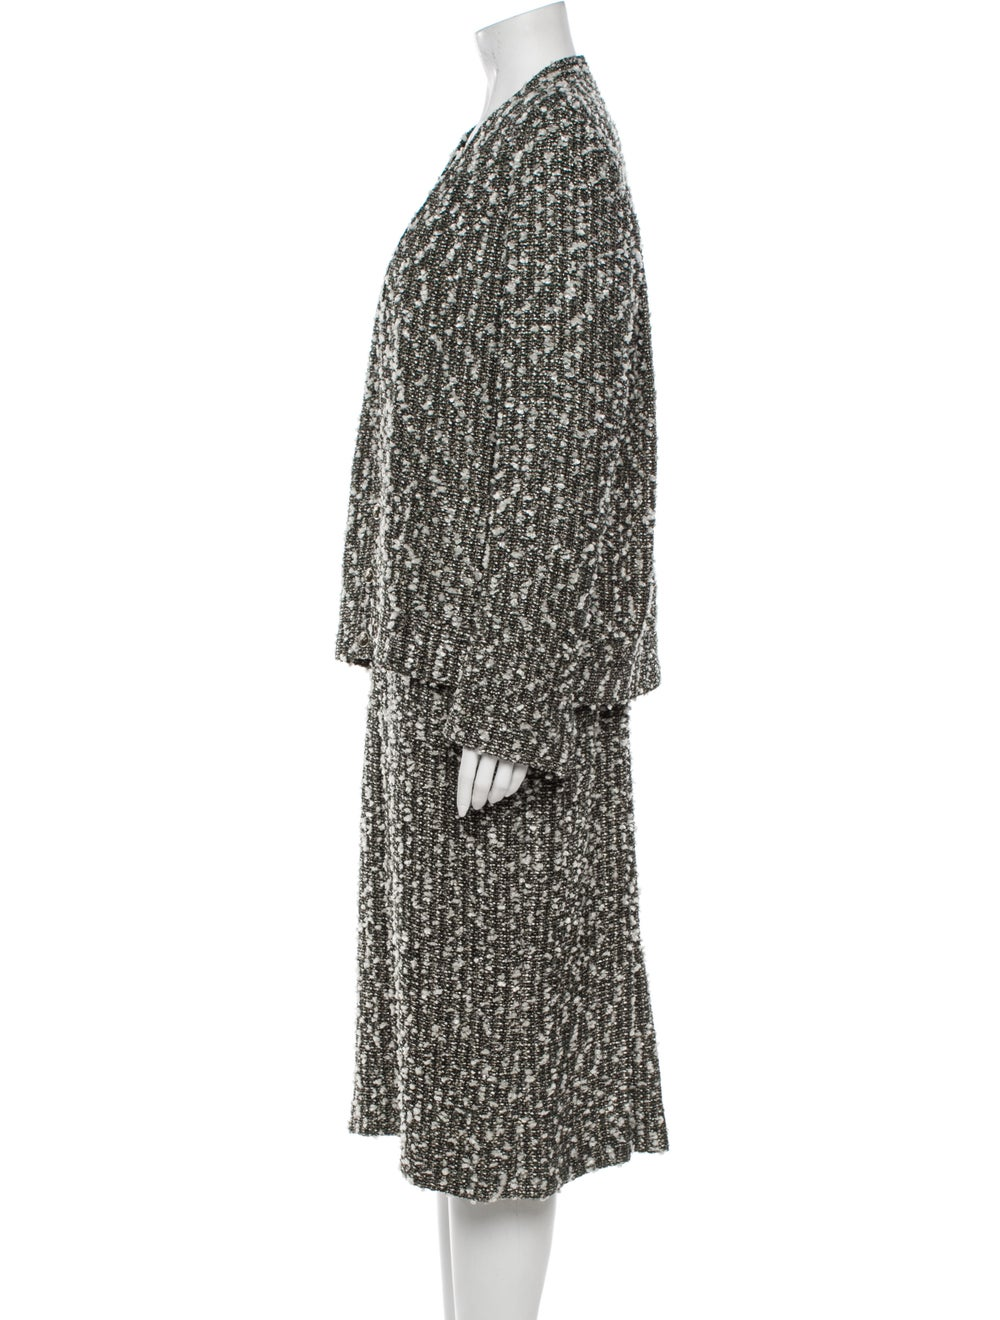 Chanel 2004 Tweed Pattern Dress Set Grey - image 2